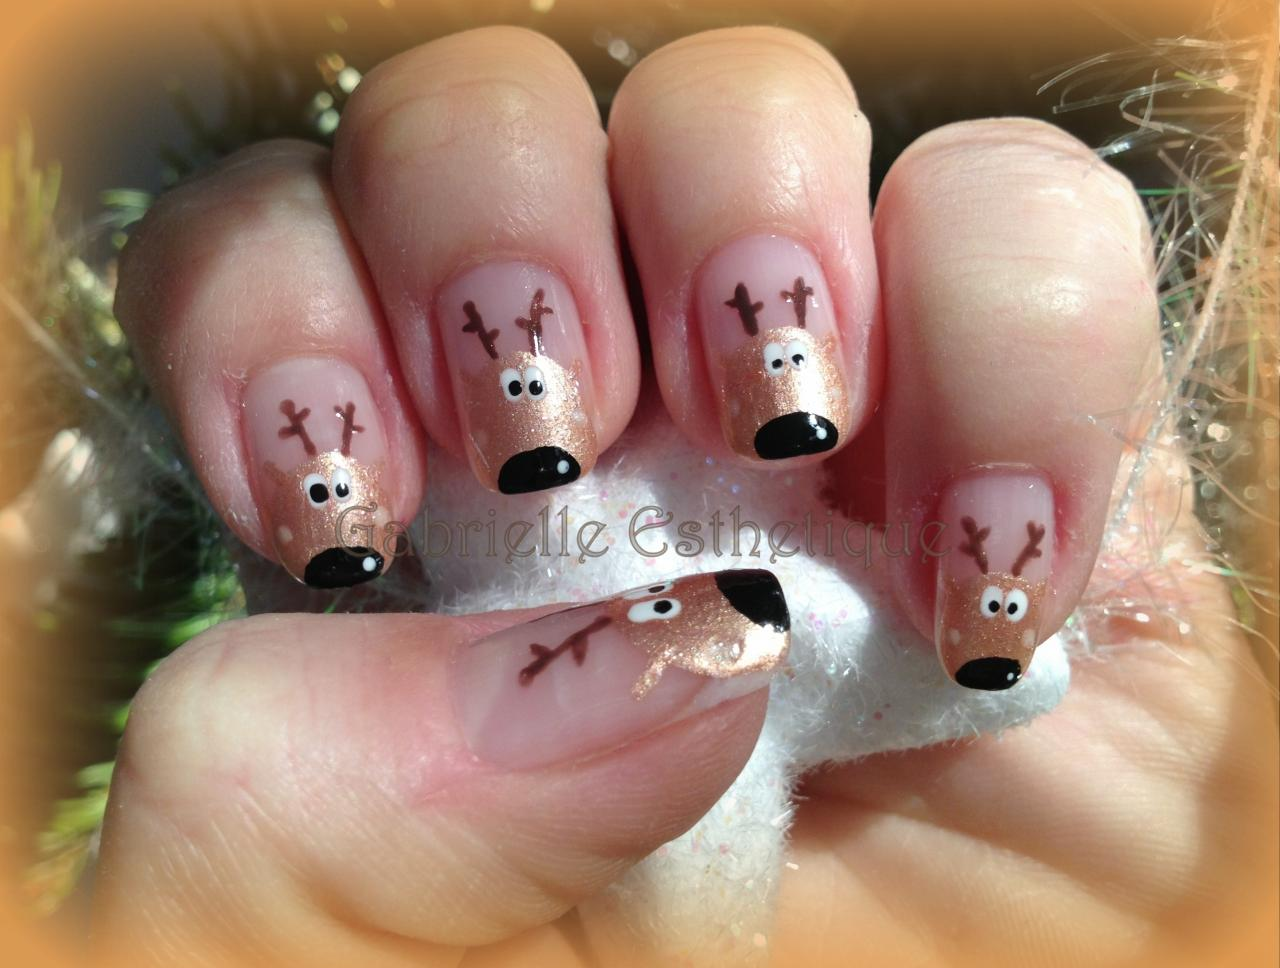 Modele ongle facile fashion designs modele ongle facile tout nail designs noel beautify themselves with sweet nails prinsesfo Gallery